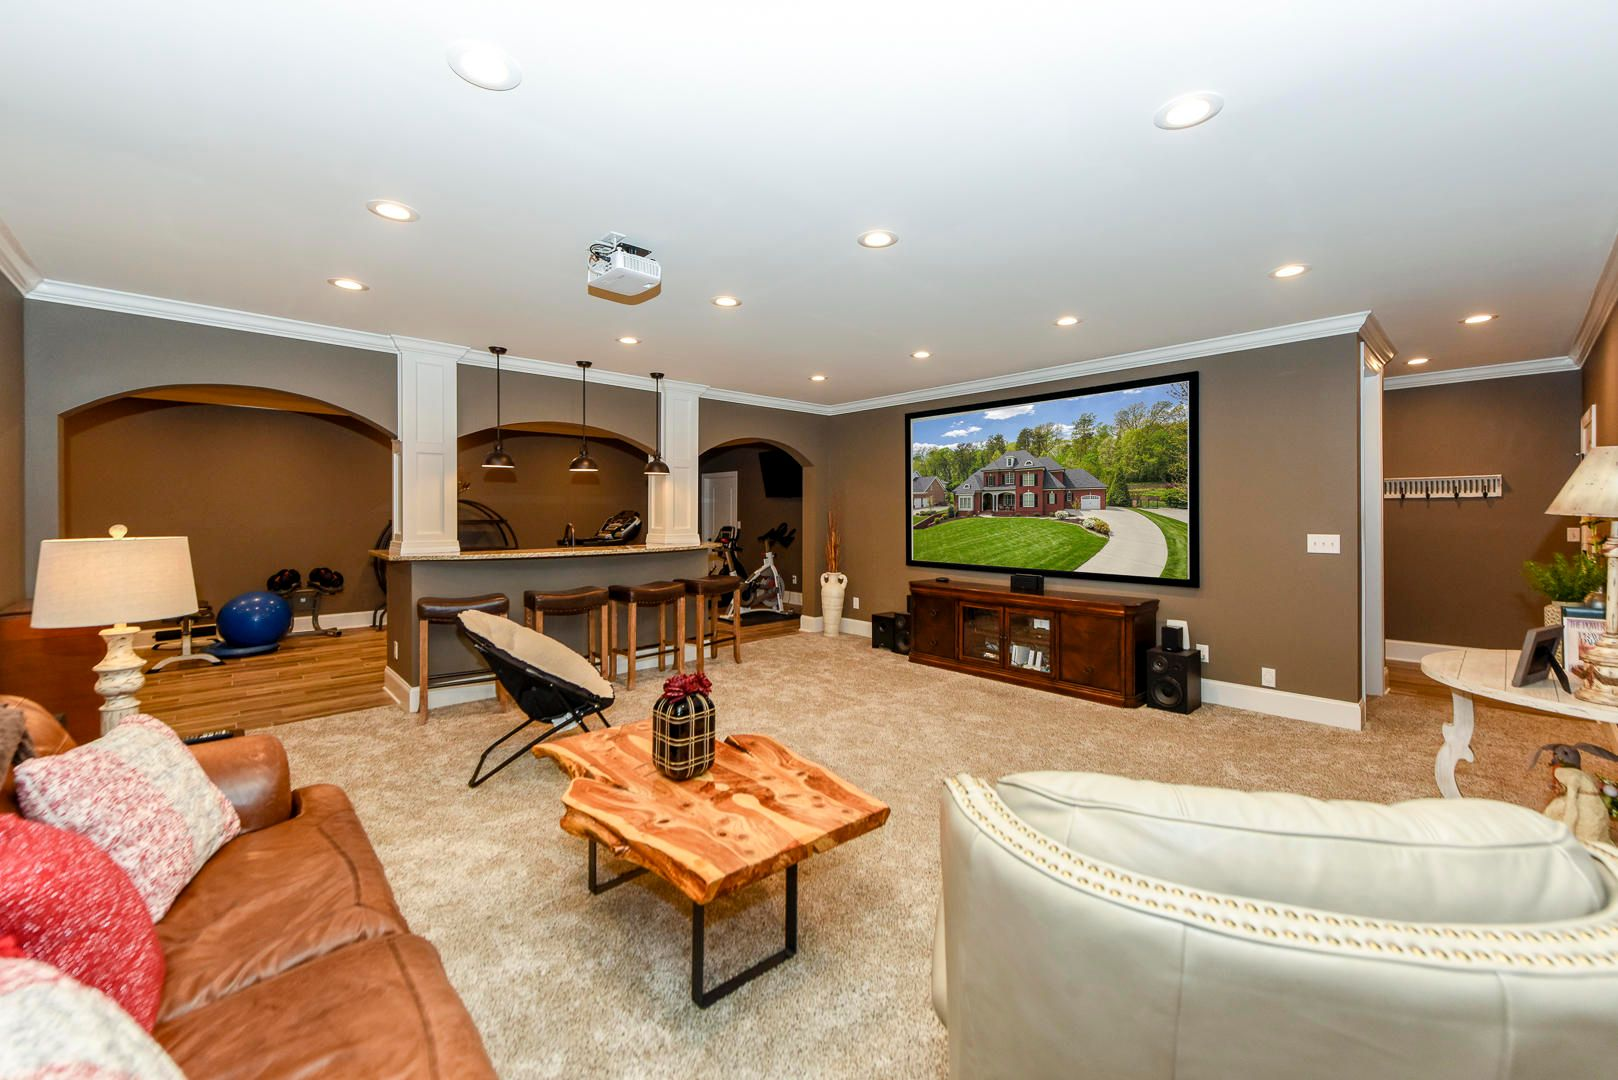 Basement with projection system